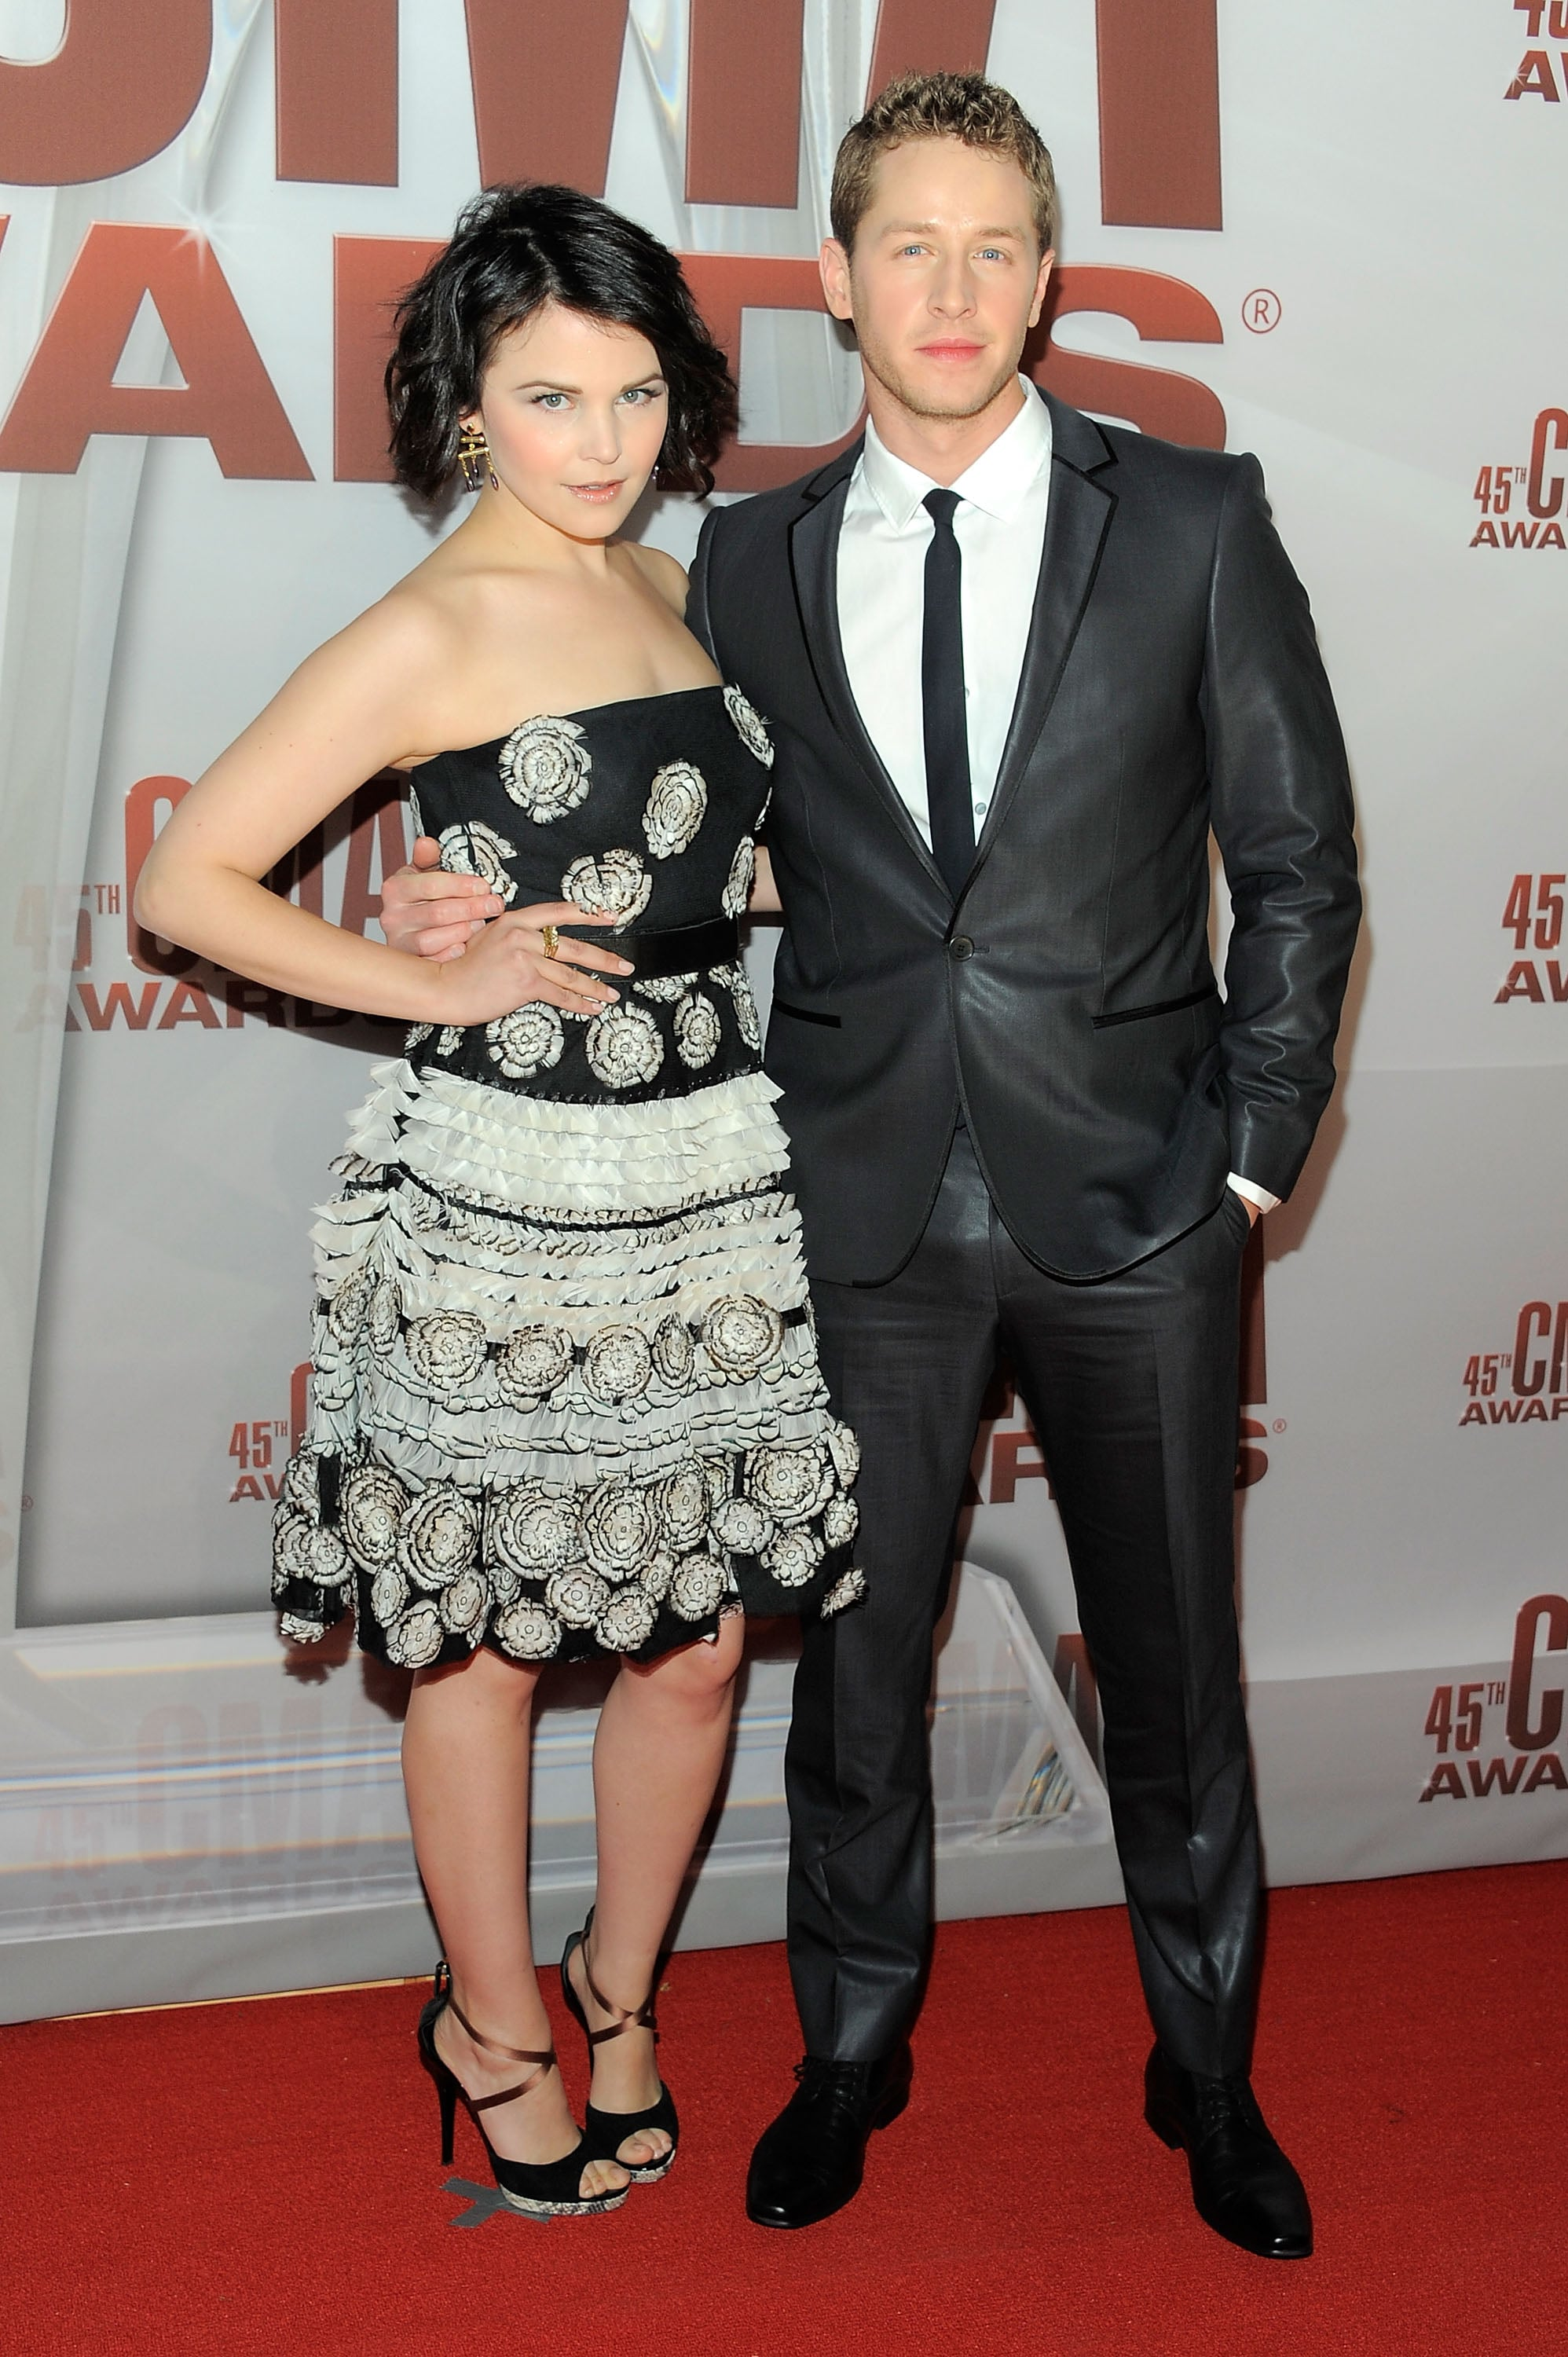 They made their red carpet debut at the 2011 CMA Awards.